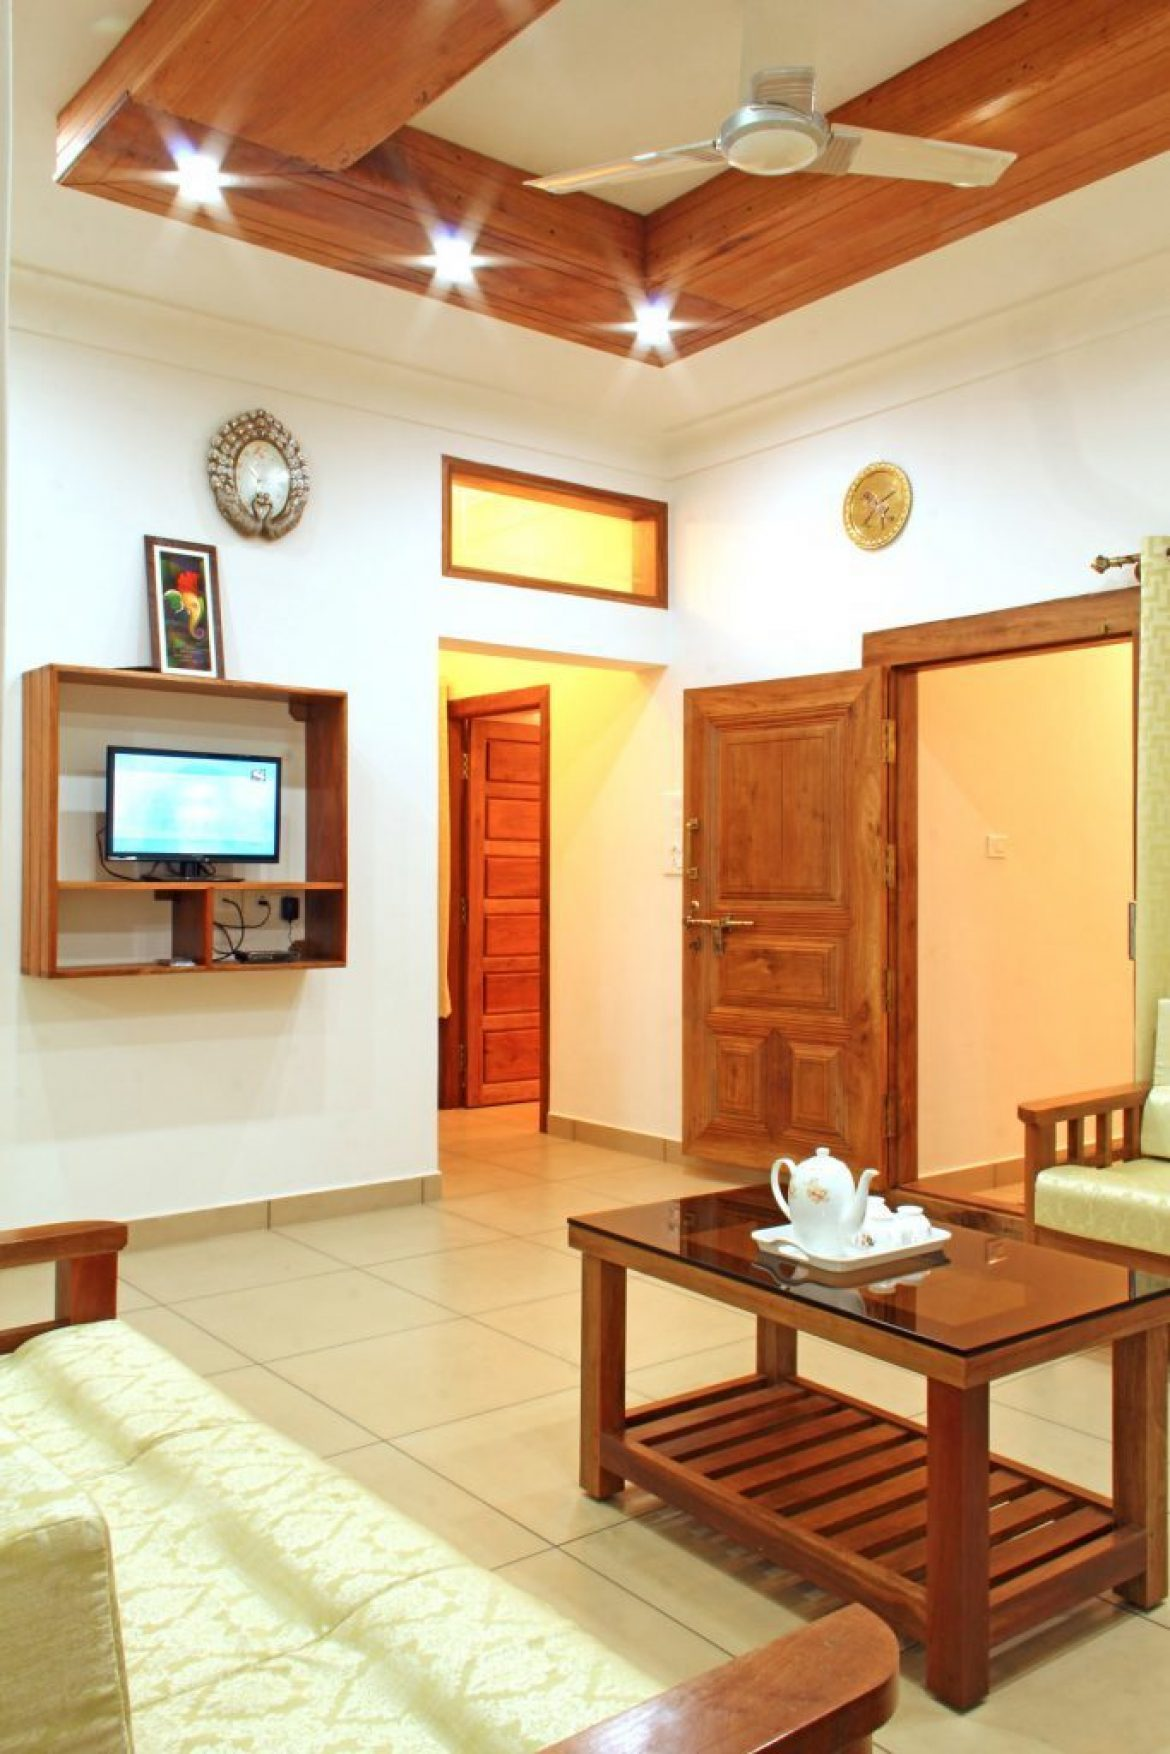 Options To Choose The Best Coorg Estate Homestay Over The Boring Hotels?